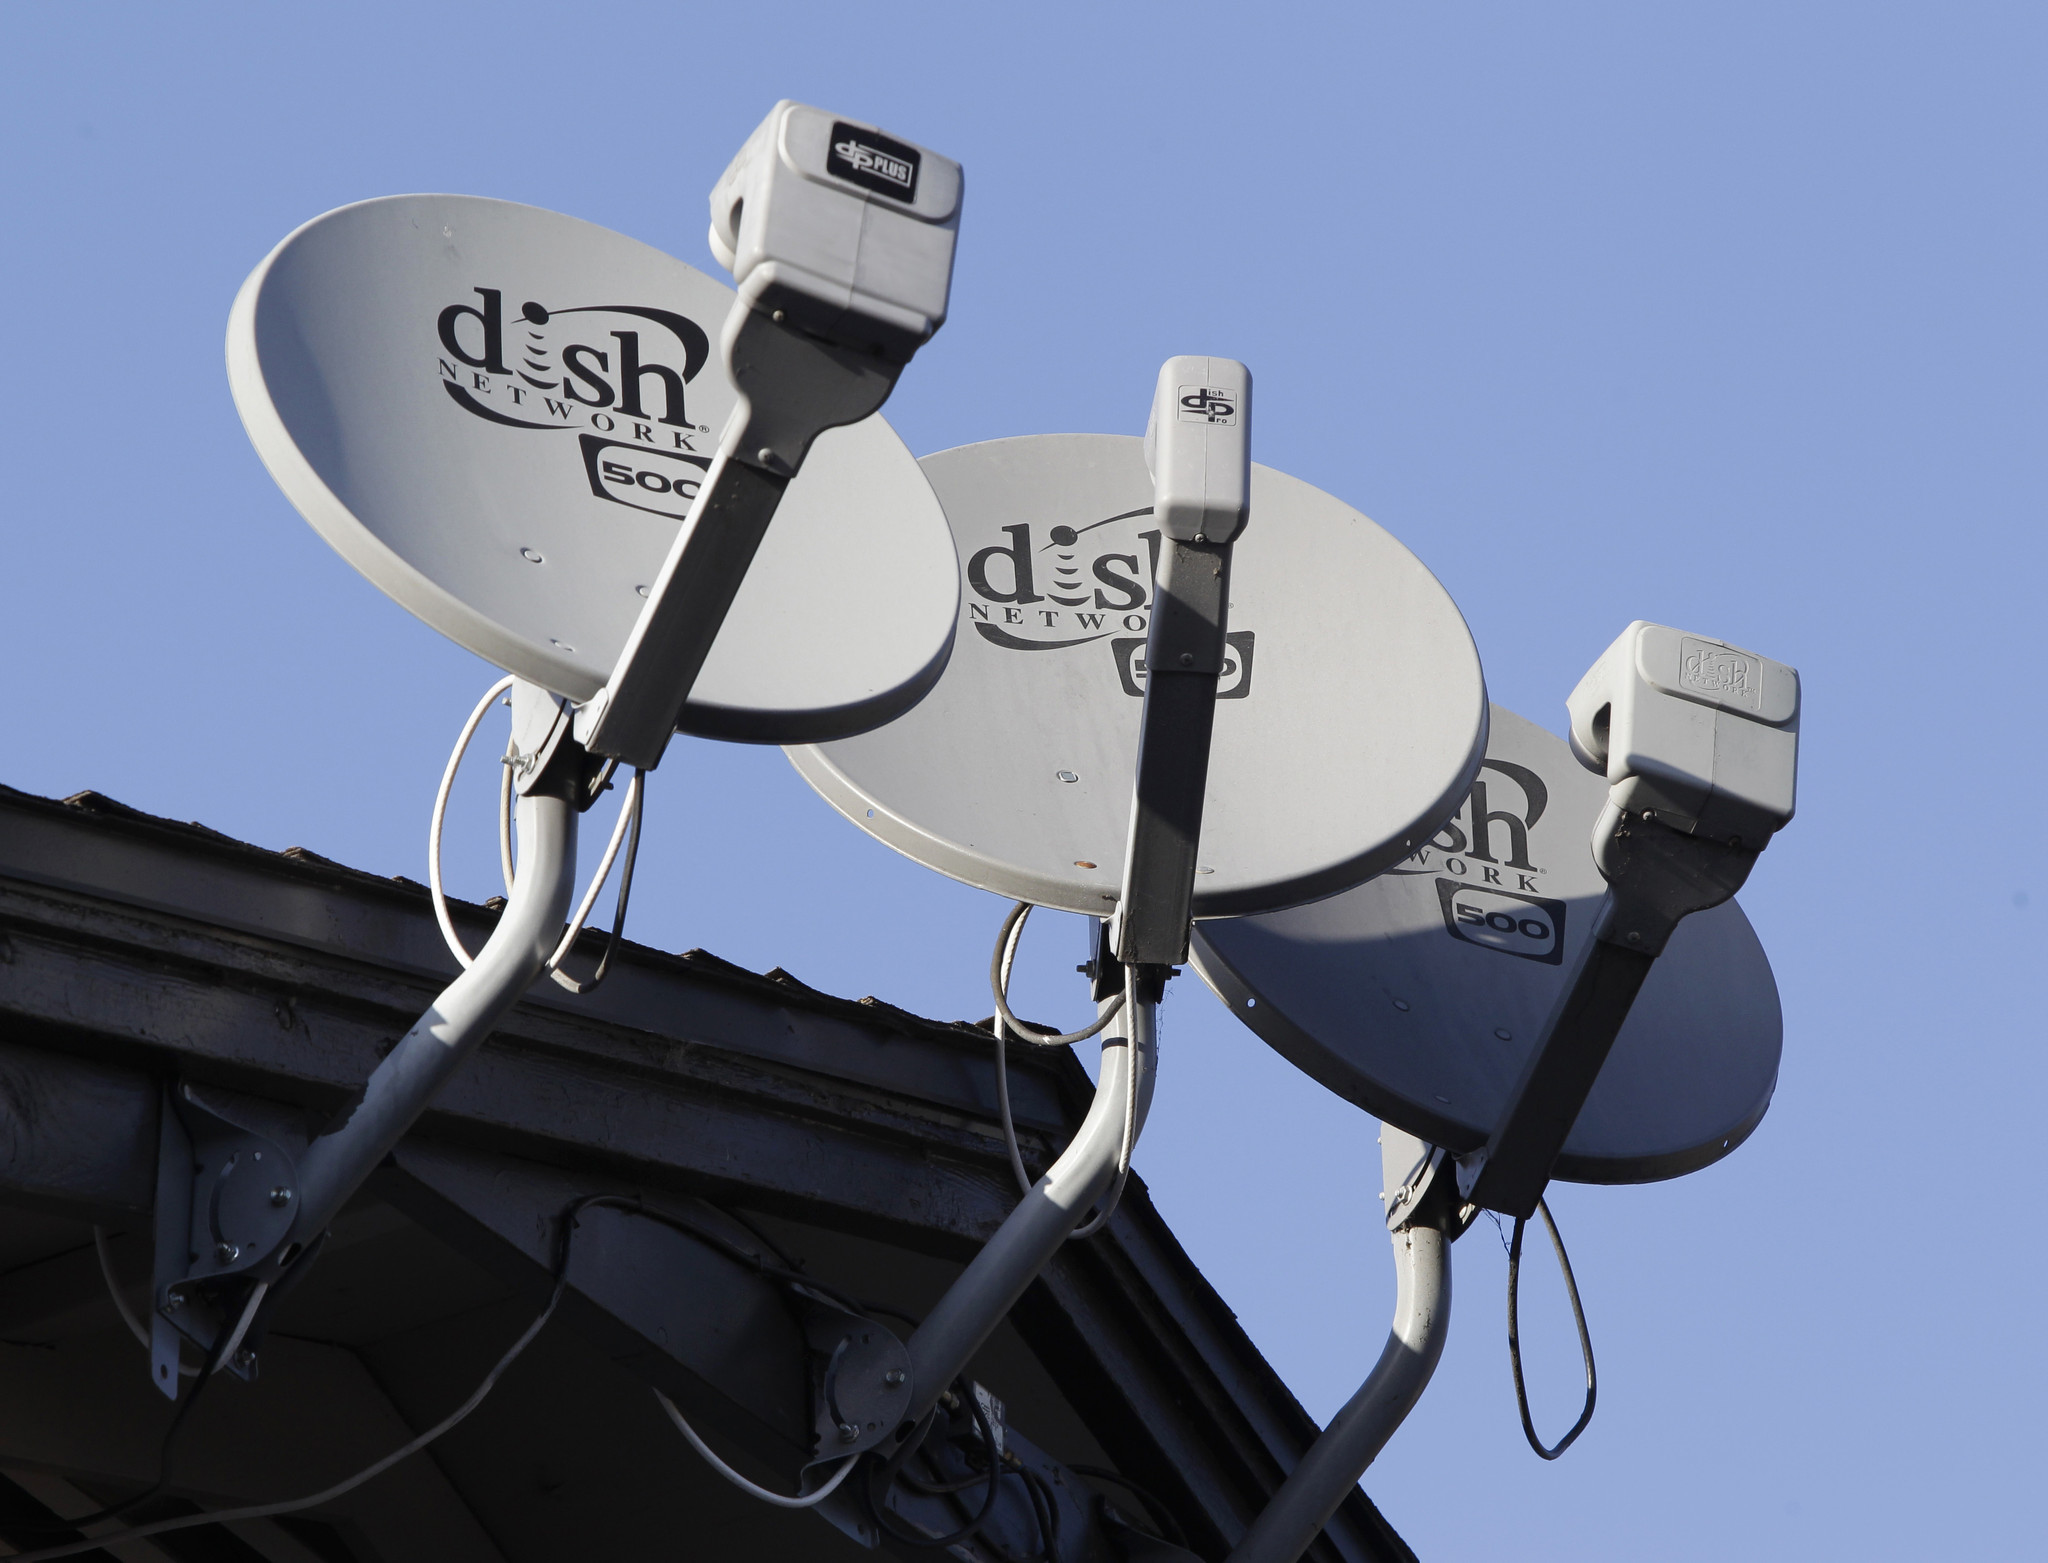 tribune tv stations go dark for dish subscribers in fee dispute